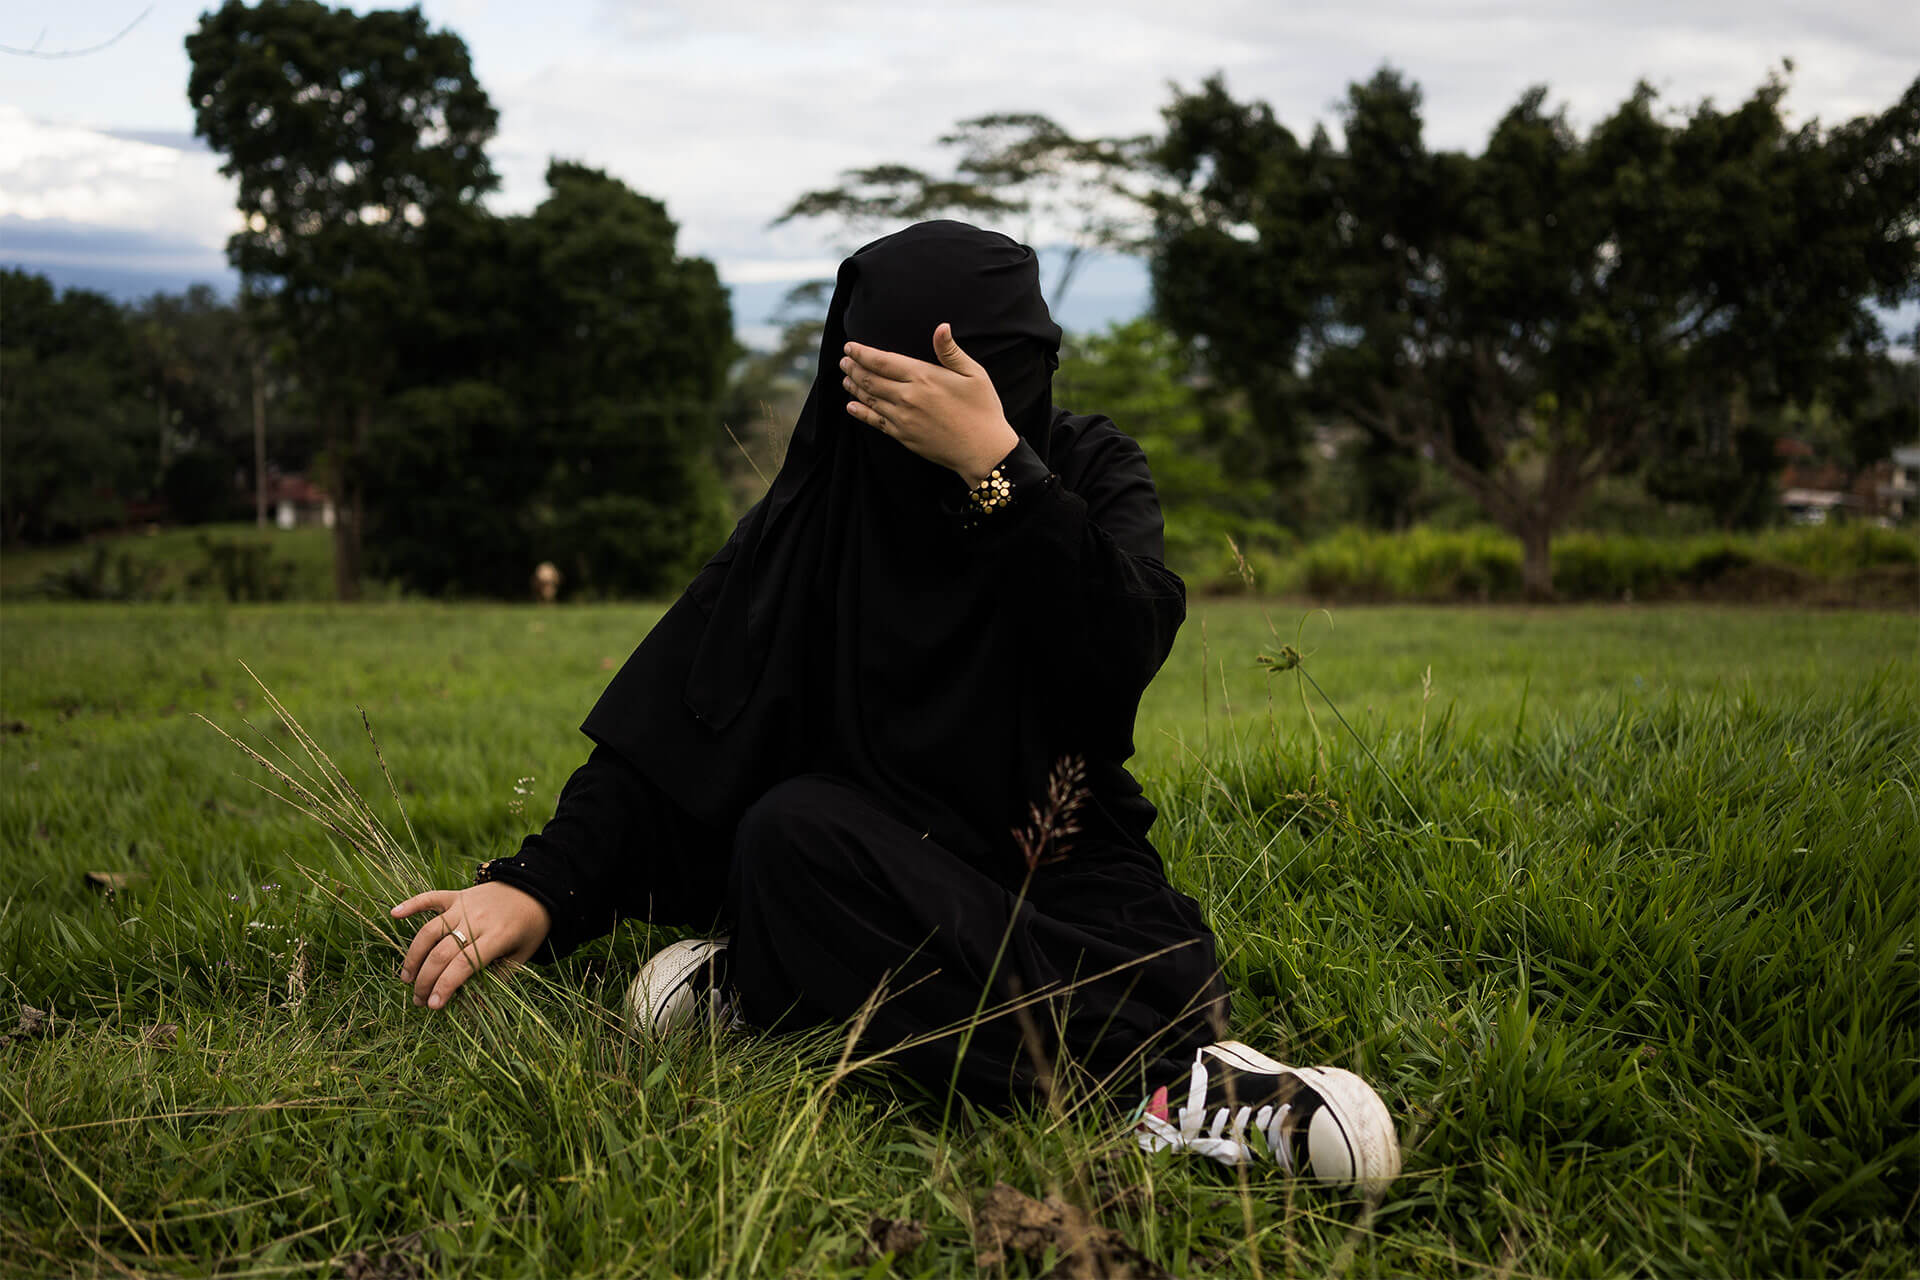 Moro Woman wearing Islamic veil covers her face